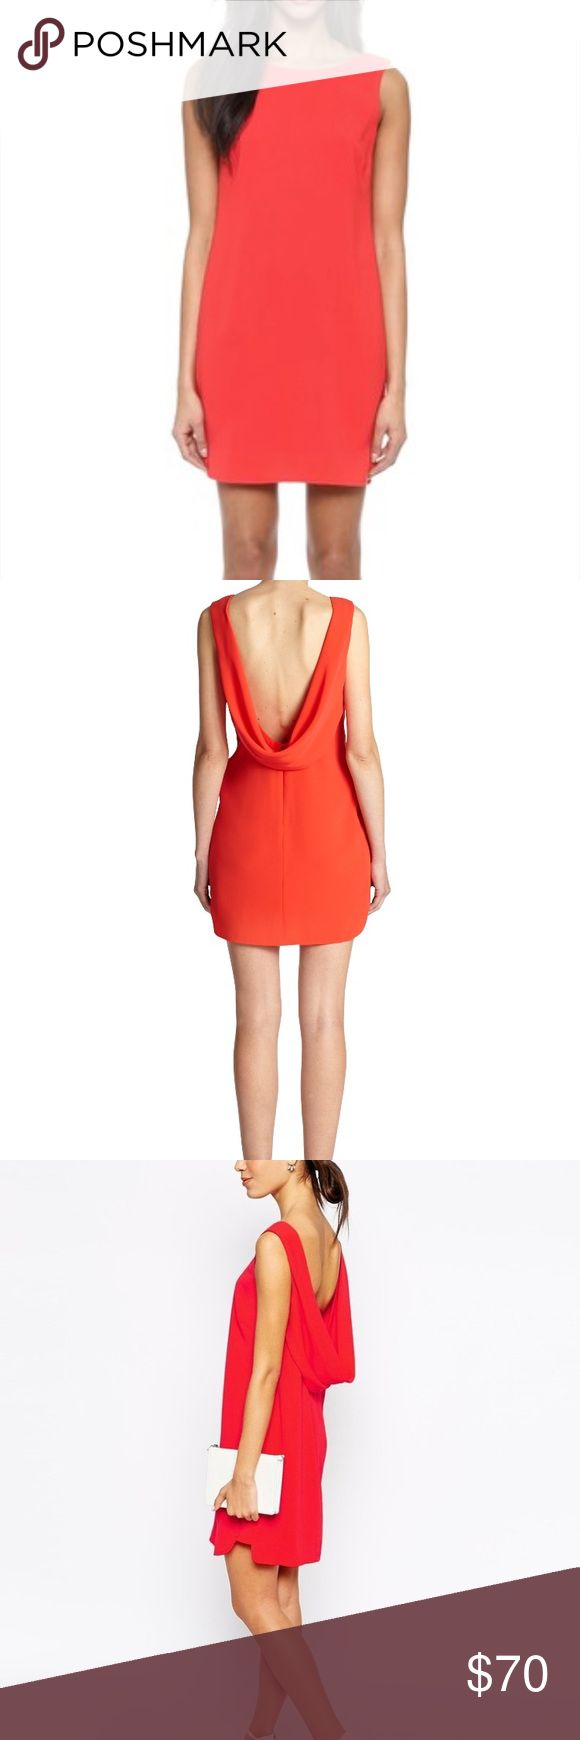 BCBG MaxAzria Cowl Back Shift Dress Low back red zip up dress. Shell is 23% polyester 77% triacetate. Lining is 100% polyester. BCBGMaxAzria Dresses